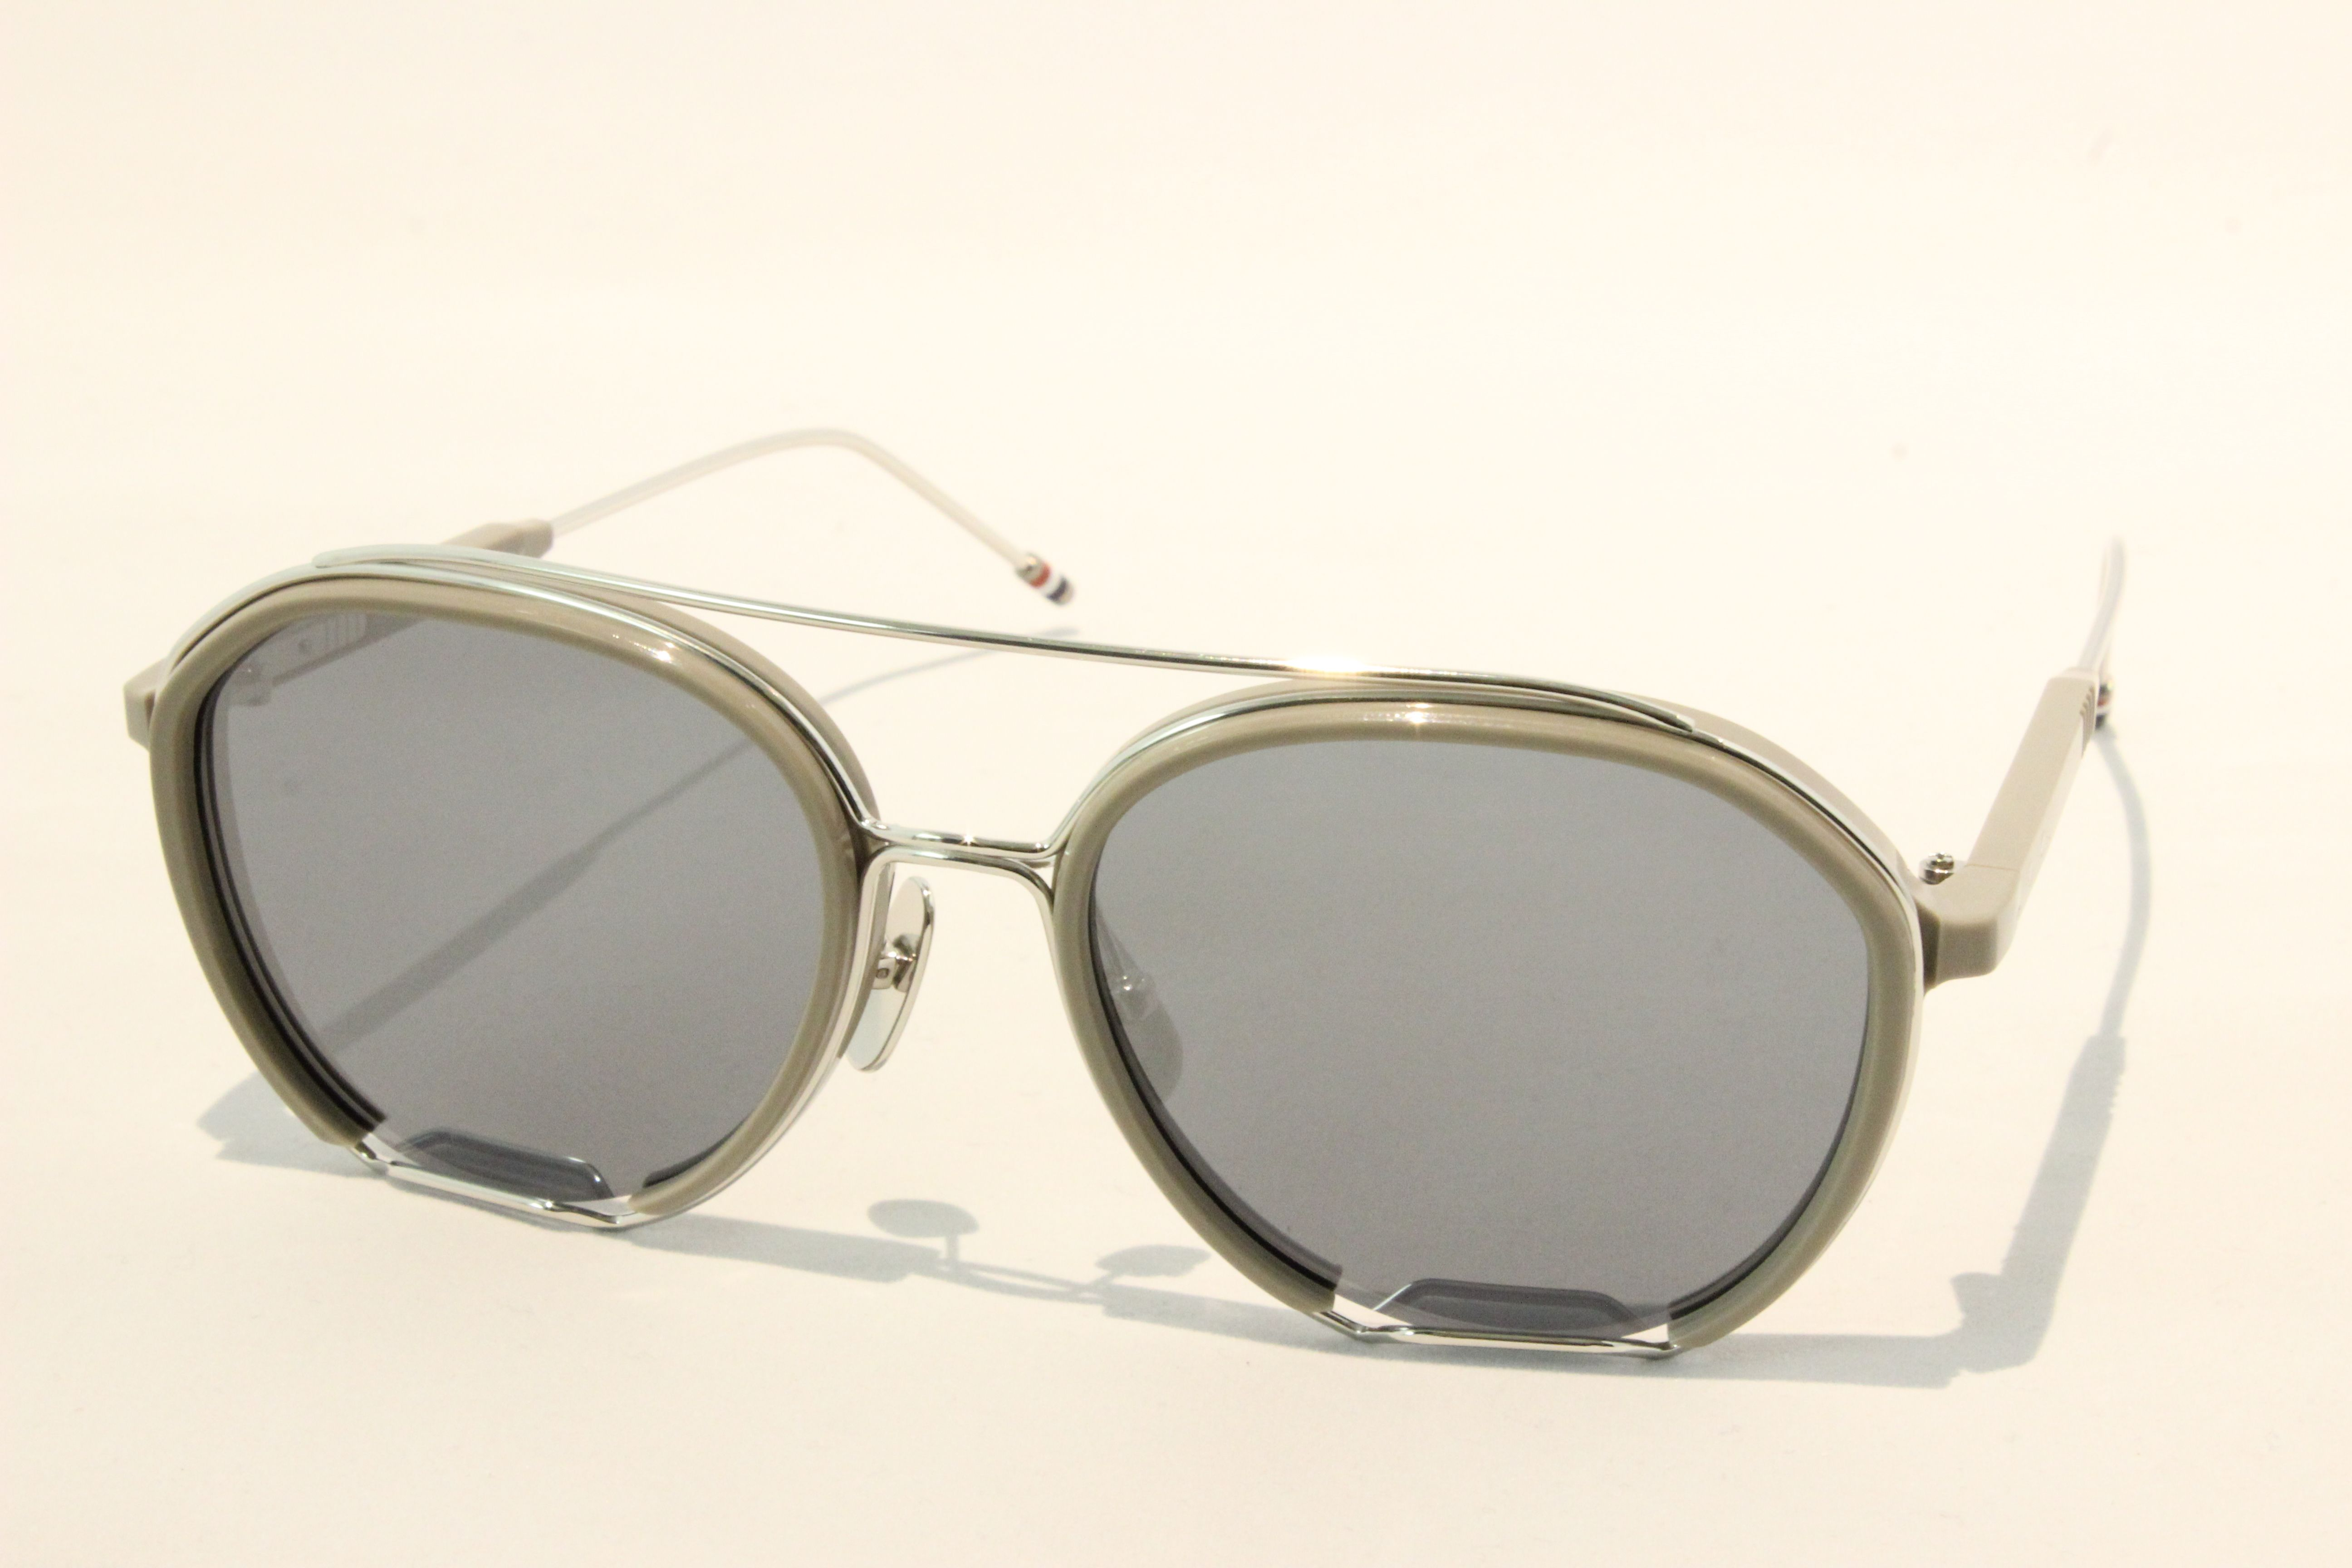 【送料無料】 THOM BROWNE(トム ブラウン) TBS-810-02 (Grey - Silver w/ Dark Grey - Silver Flash Mirror - AR  )